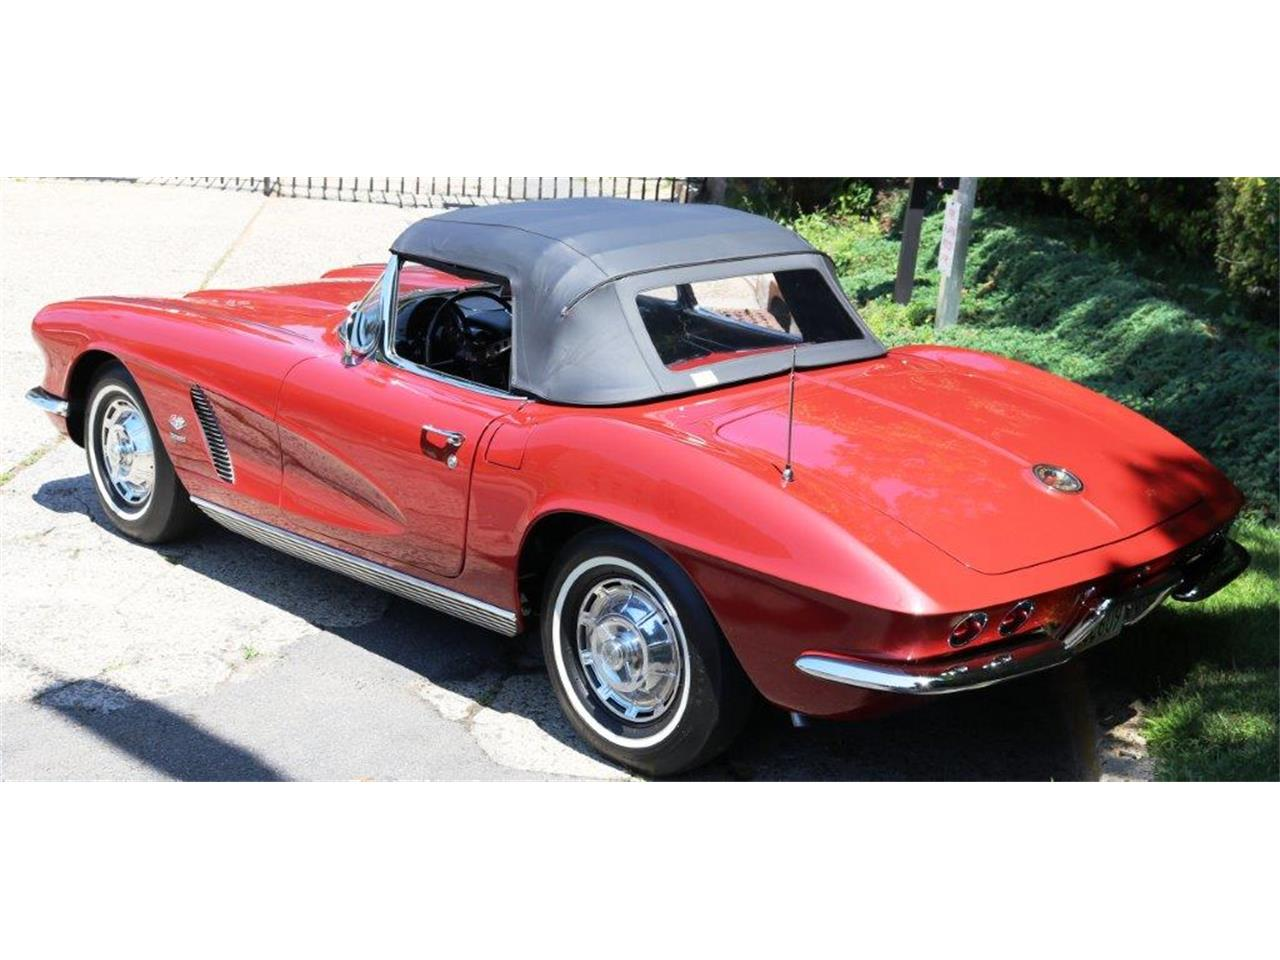 Large Picture of Classic 1962 Corvette located in New Jersey Offered by a Private Seller - OMBK